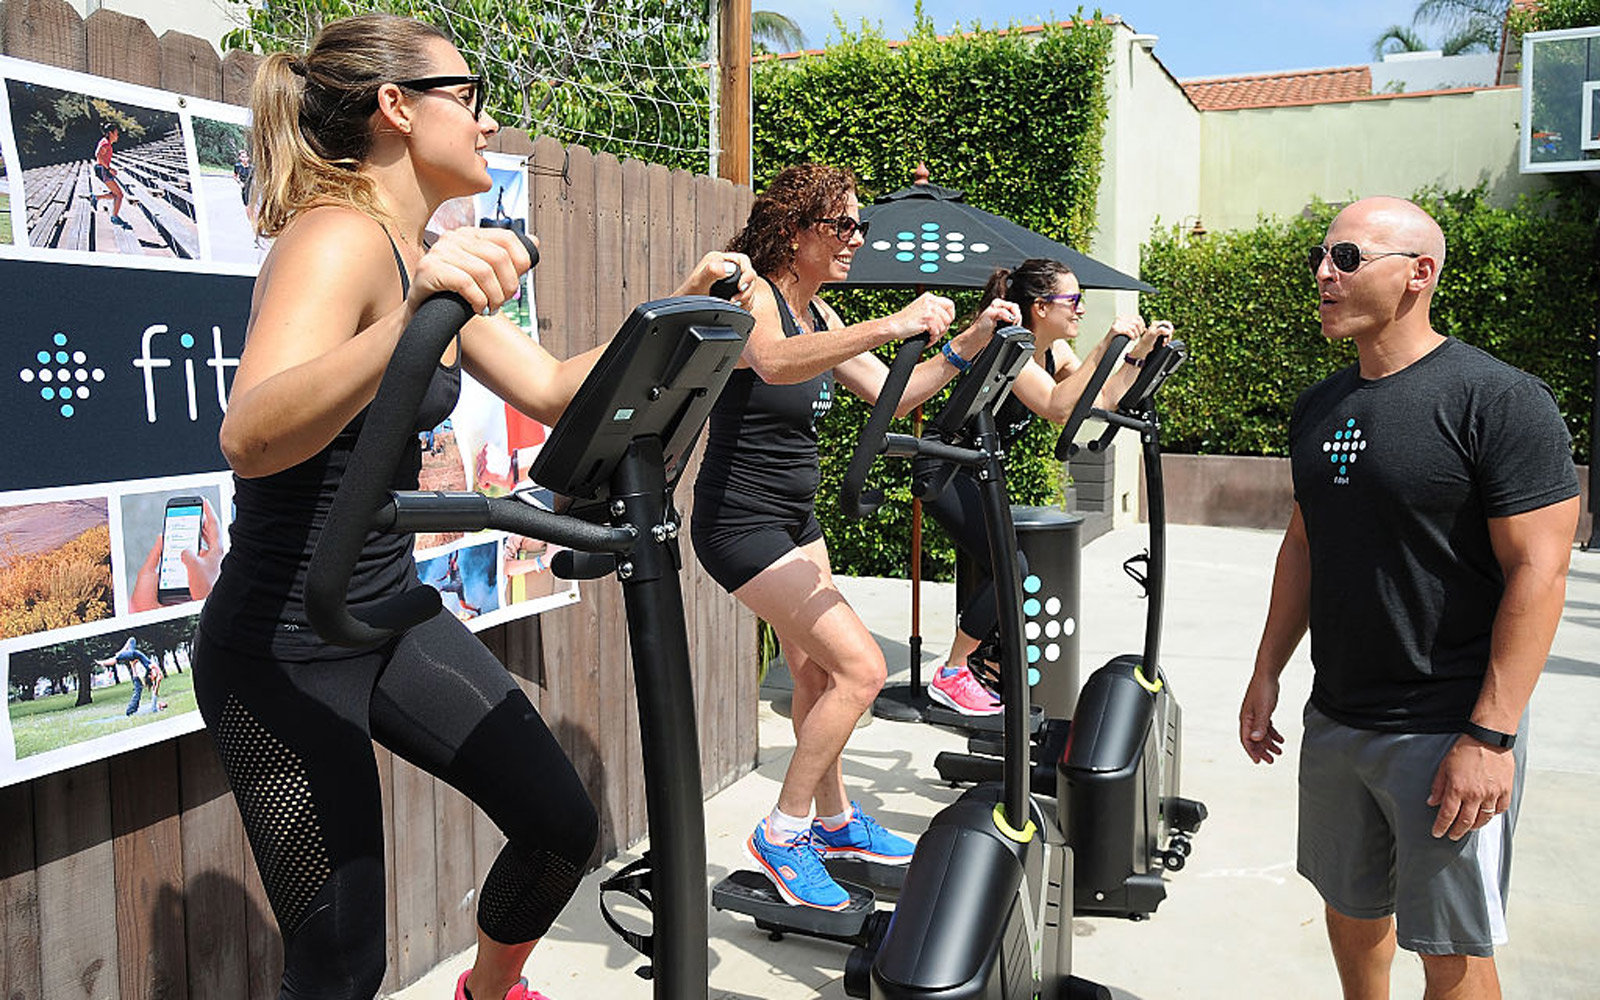 Celebrity Fitness Trainer Says It's Better to Walk a Mile Per Hour on the Treadmill Than Take a Spin Class